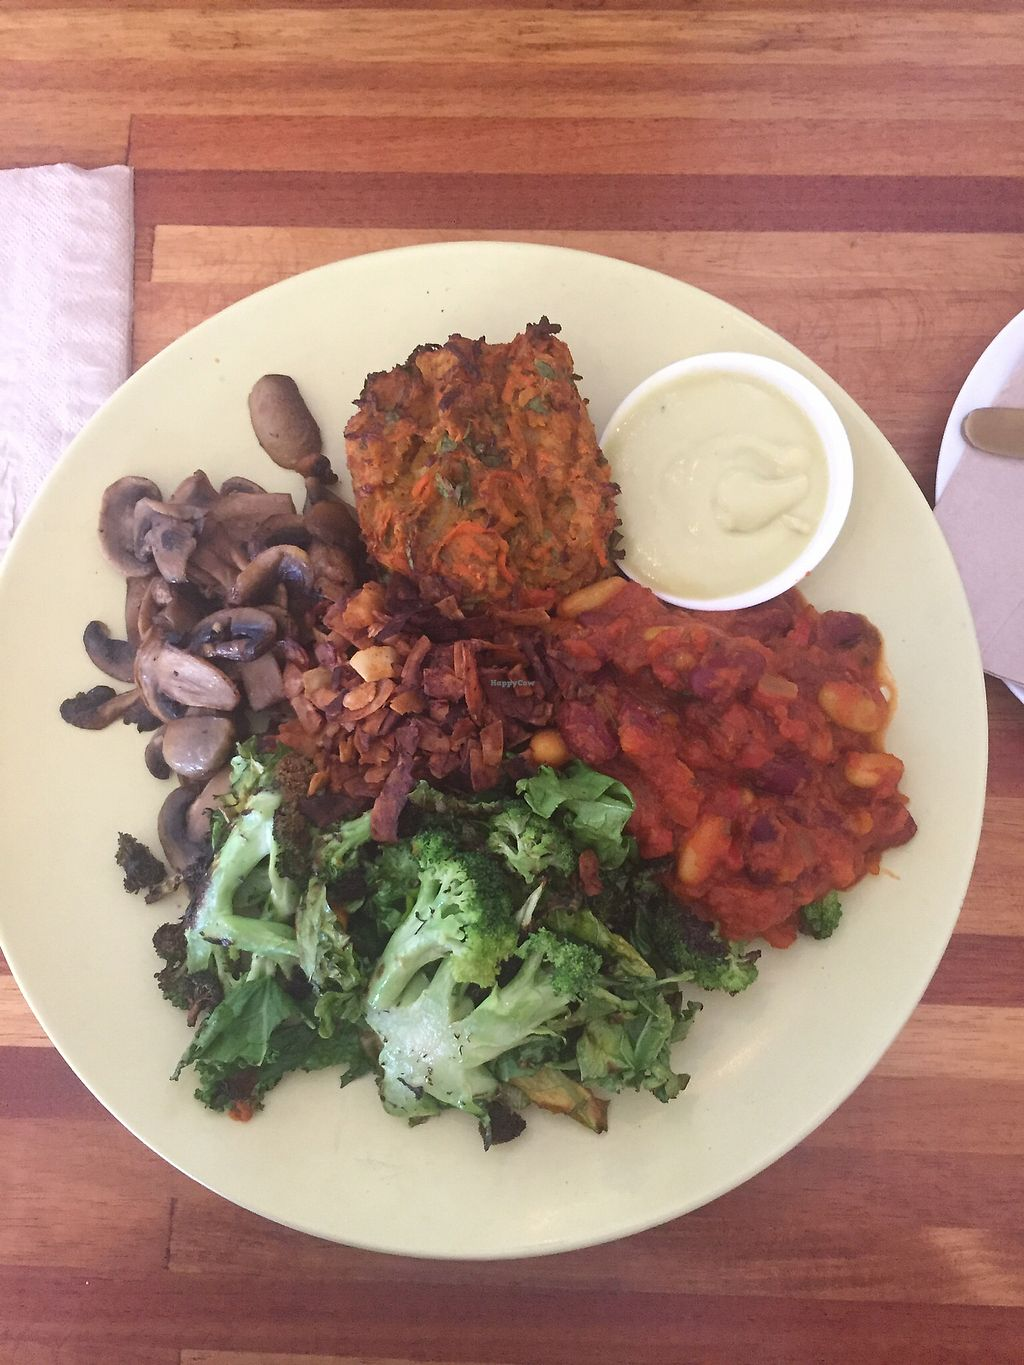 """Photo of The Healthy Hub  by <a href=""""/members/profile/MichelePaes"""">MichelePaes</a> <br/>The Herbivore  <br/> December 21, 2017  - <a href='/contact/abuse/image/107319/337716'>Report</a>"""